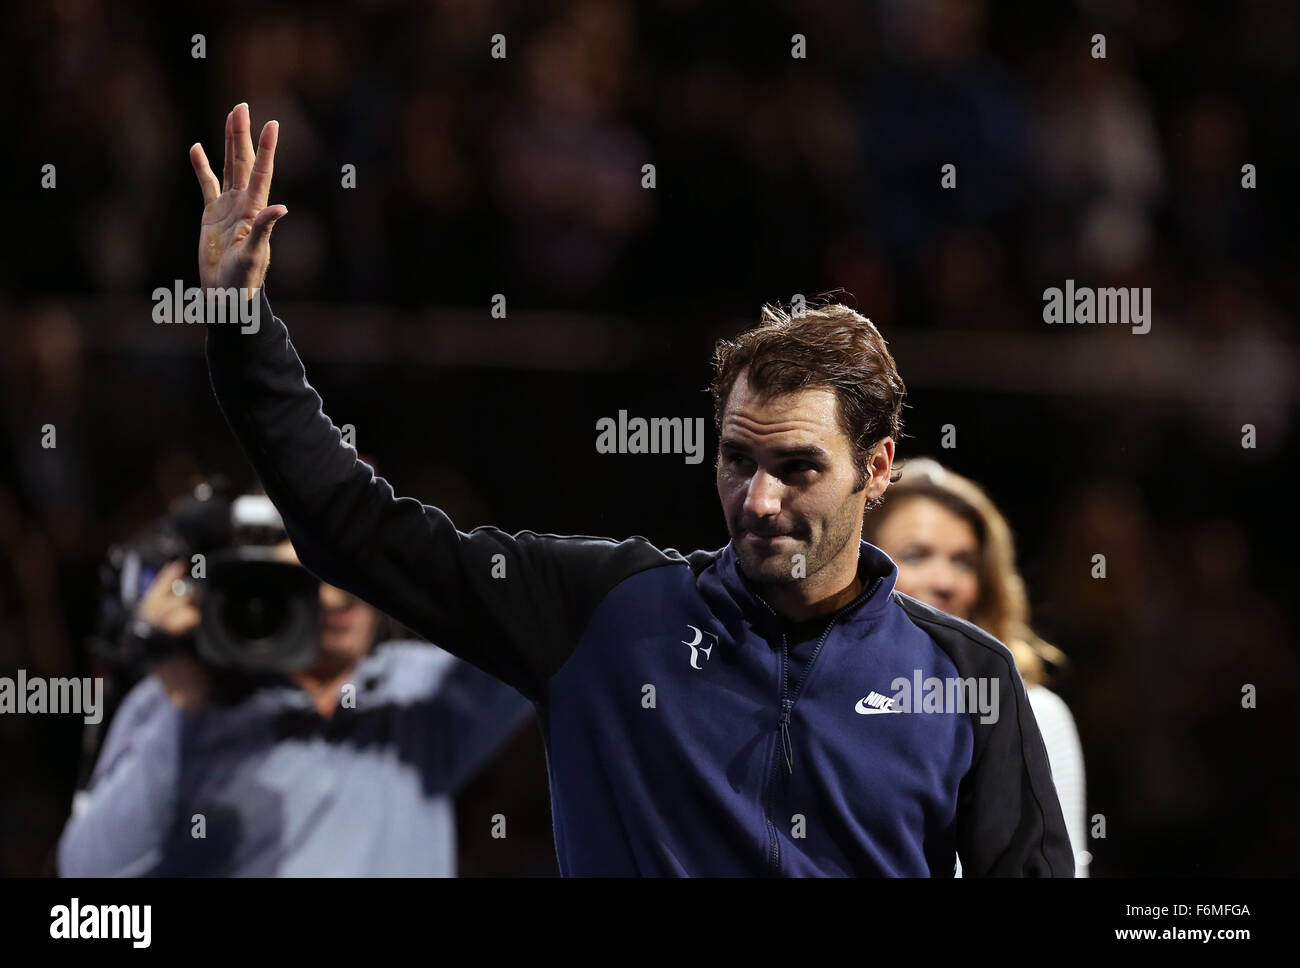 London, UK. 17th Nov, 2015. Roger Federer of Switzerland waves after the match against Novak Djokovic of Serbia Stock Photo